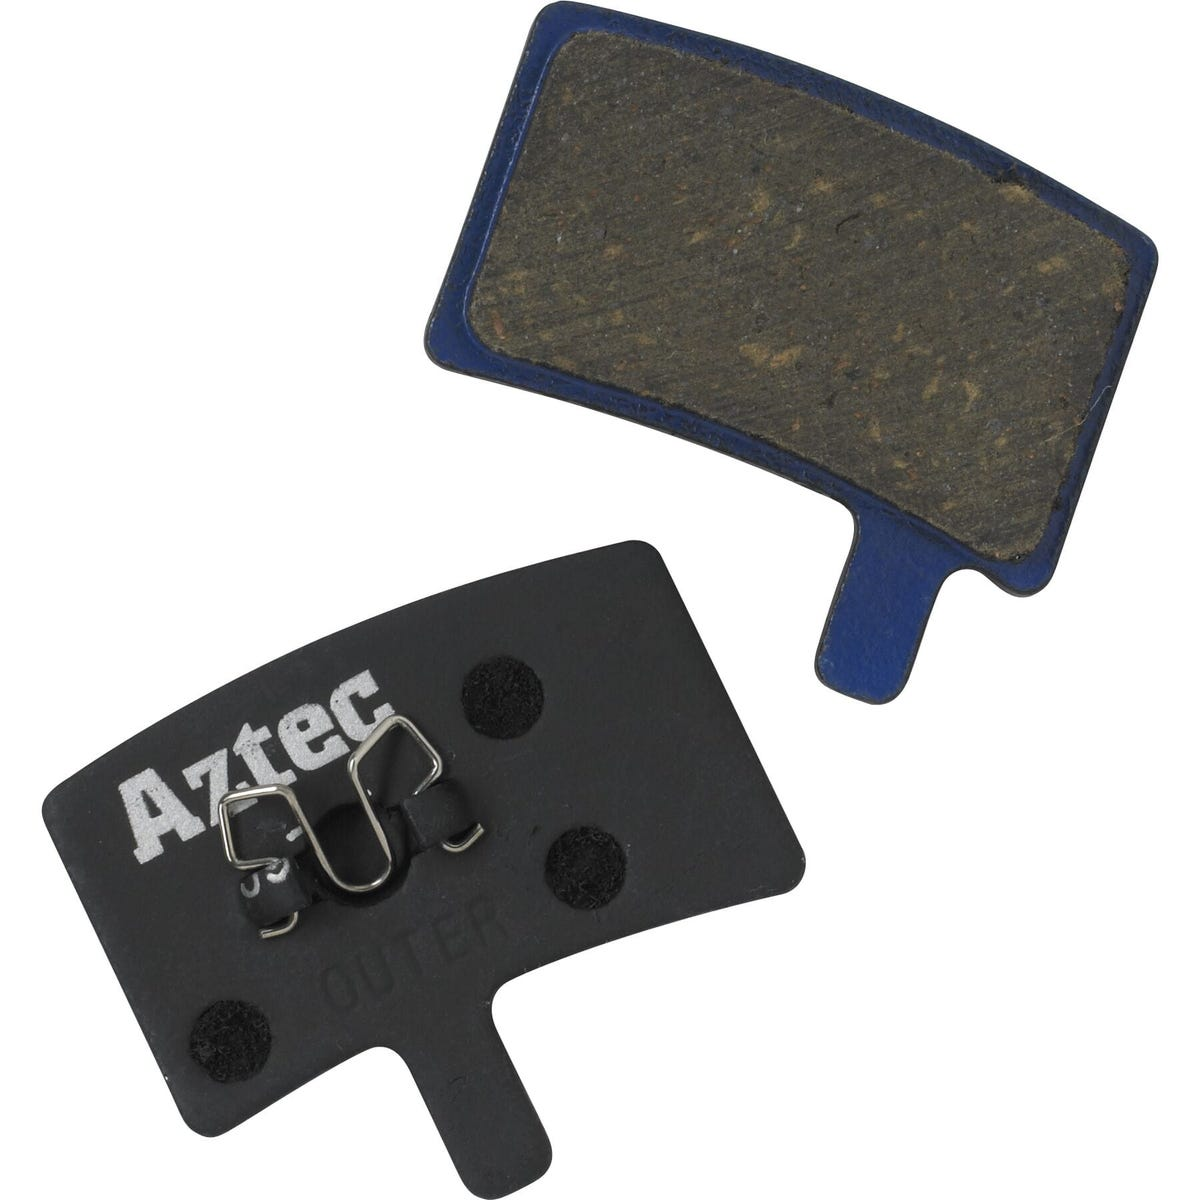 Aztec Organic disc brake pads for Hayes Stroker Trail